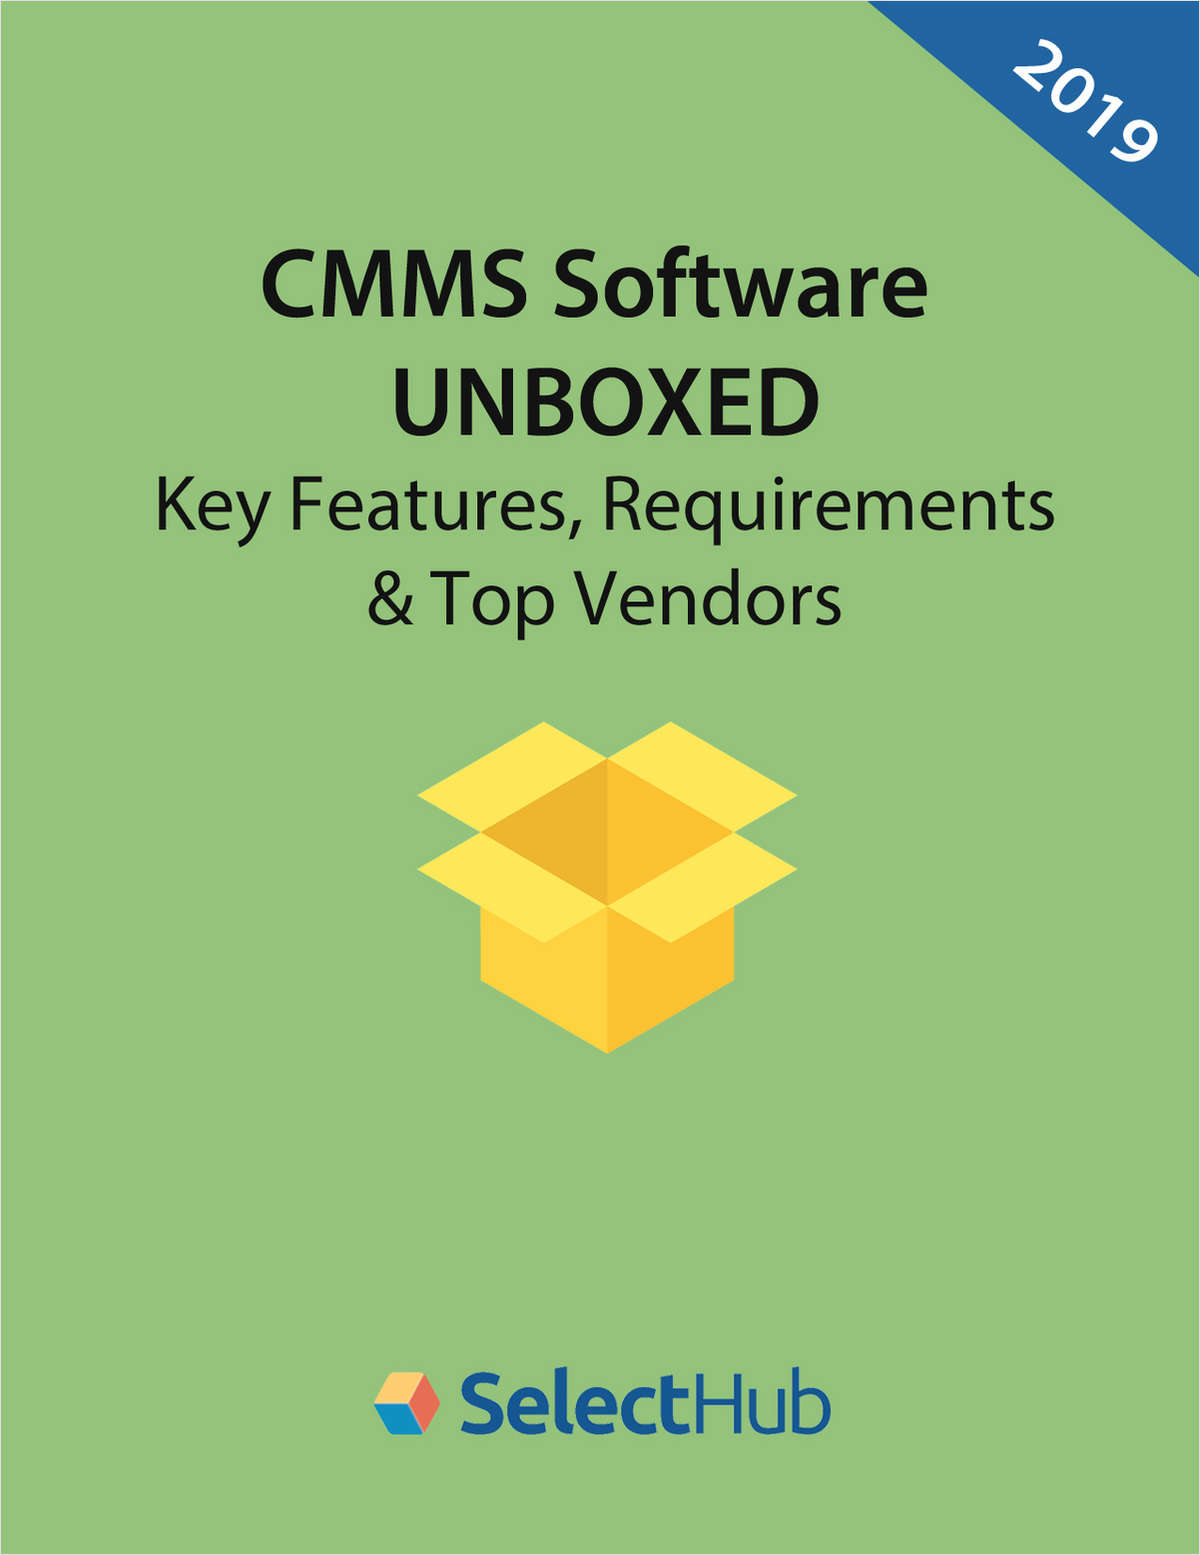 Top CMMS Software Features & Requirements Checklist